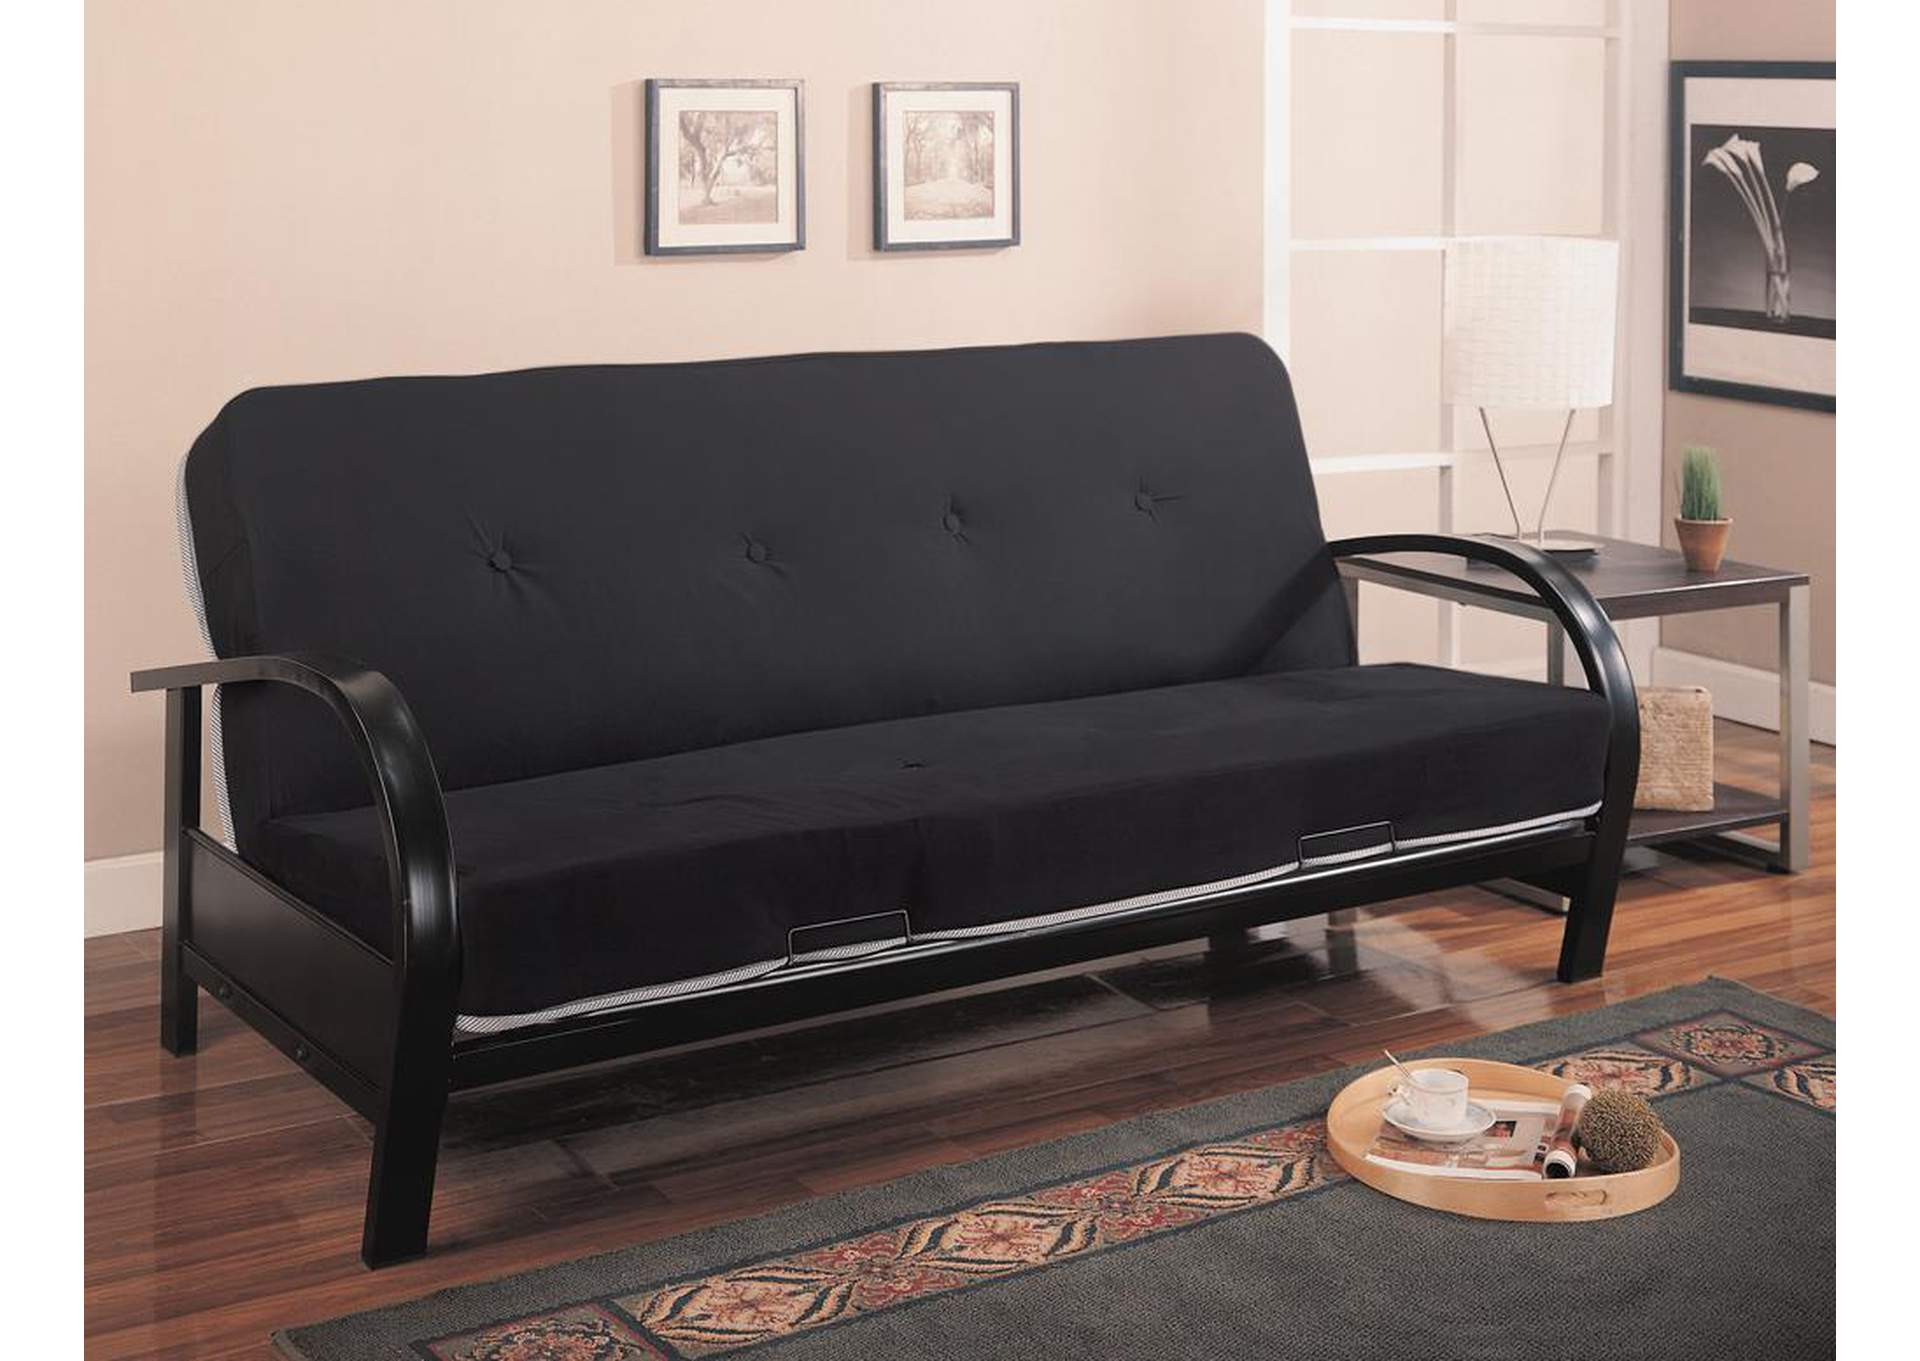 Futon Frame,ABF Coaster Furniture